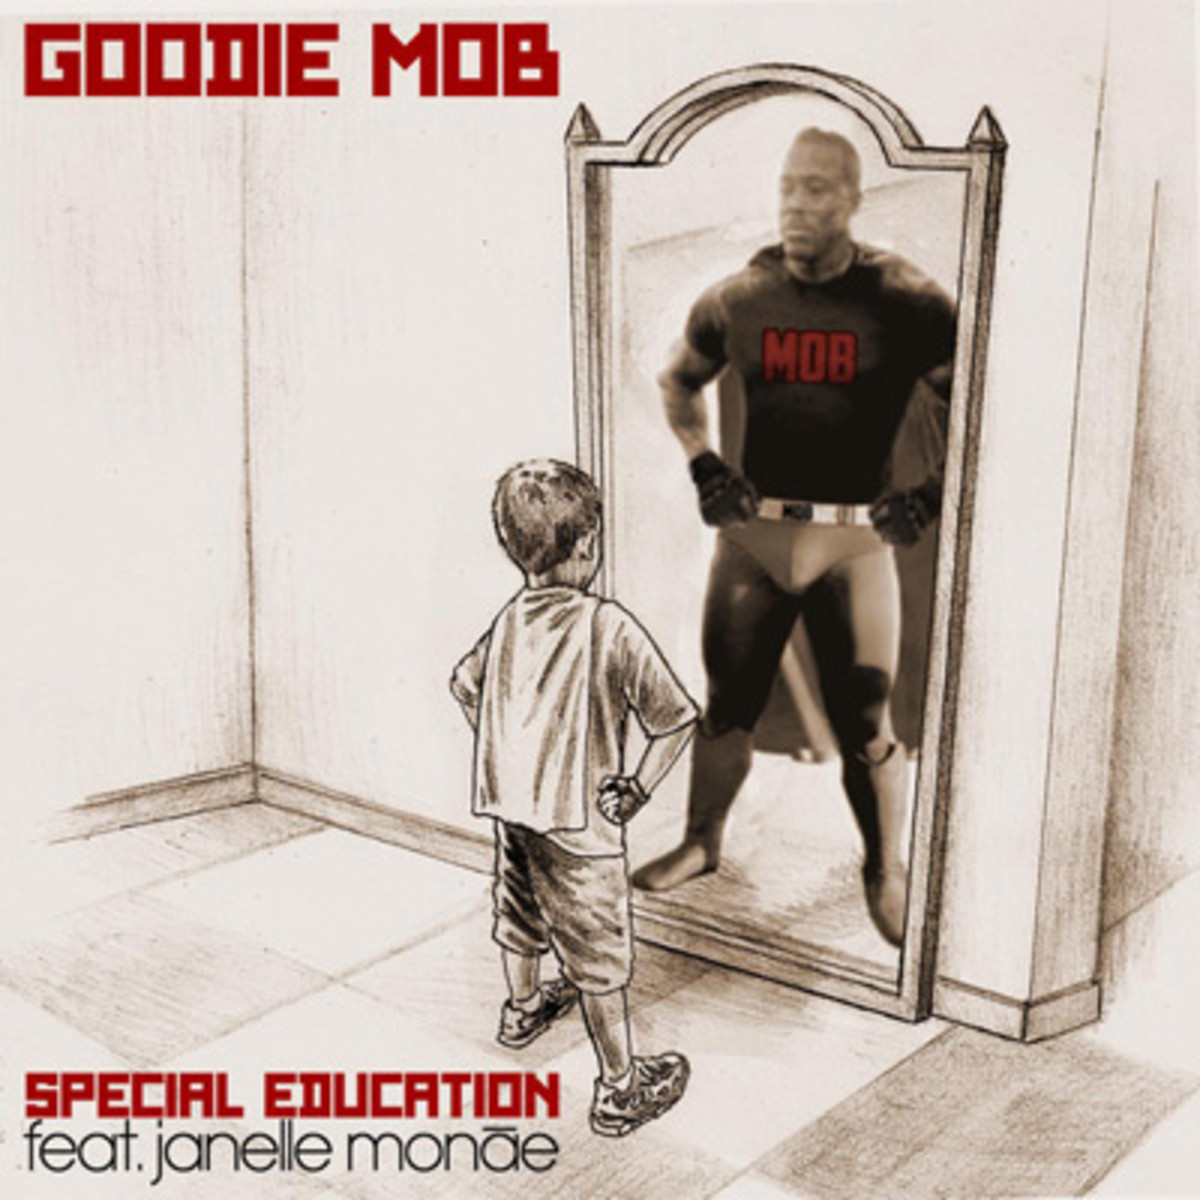 goodiemob-specialeducation.jpg